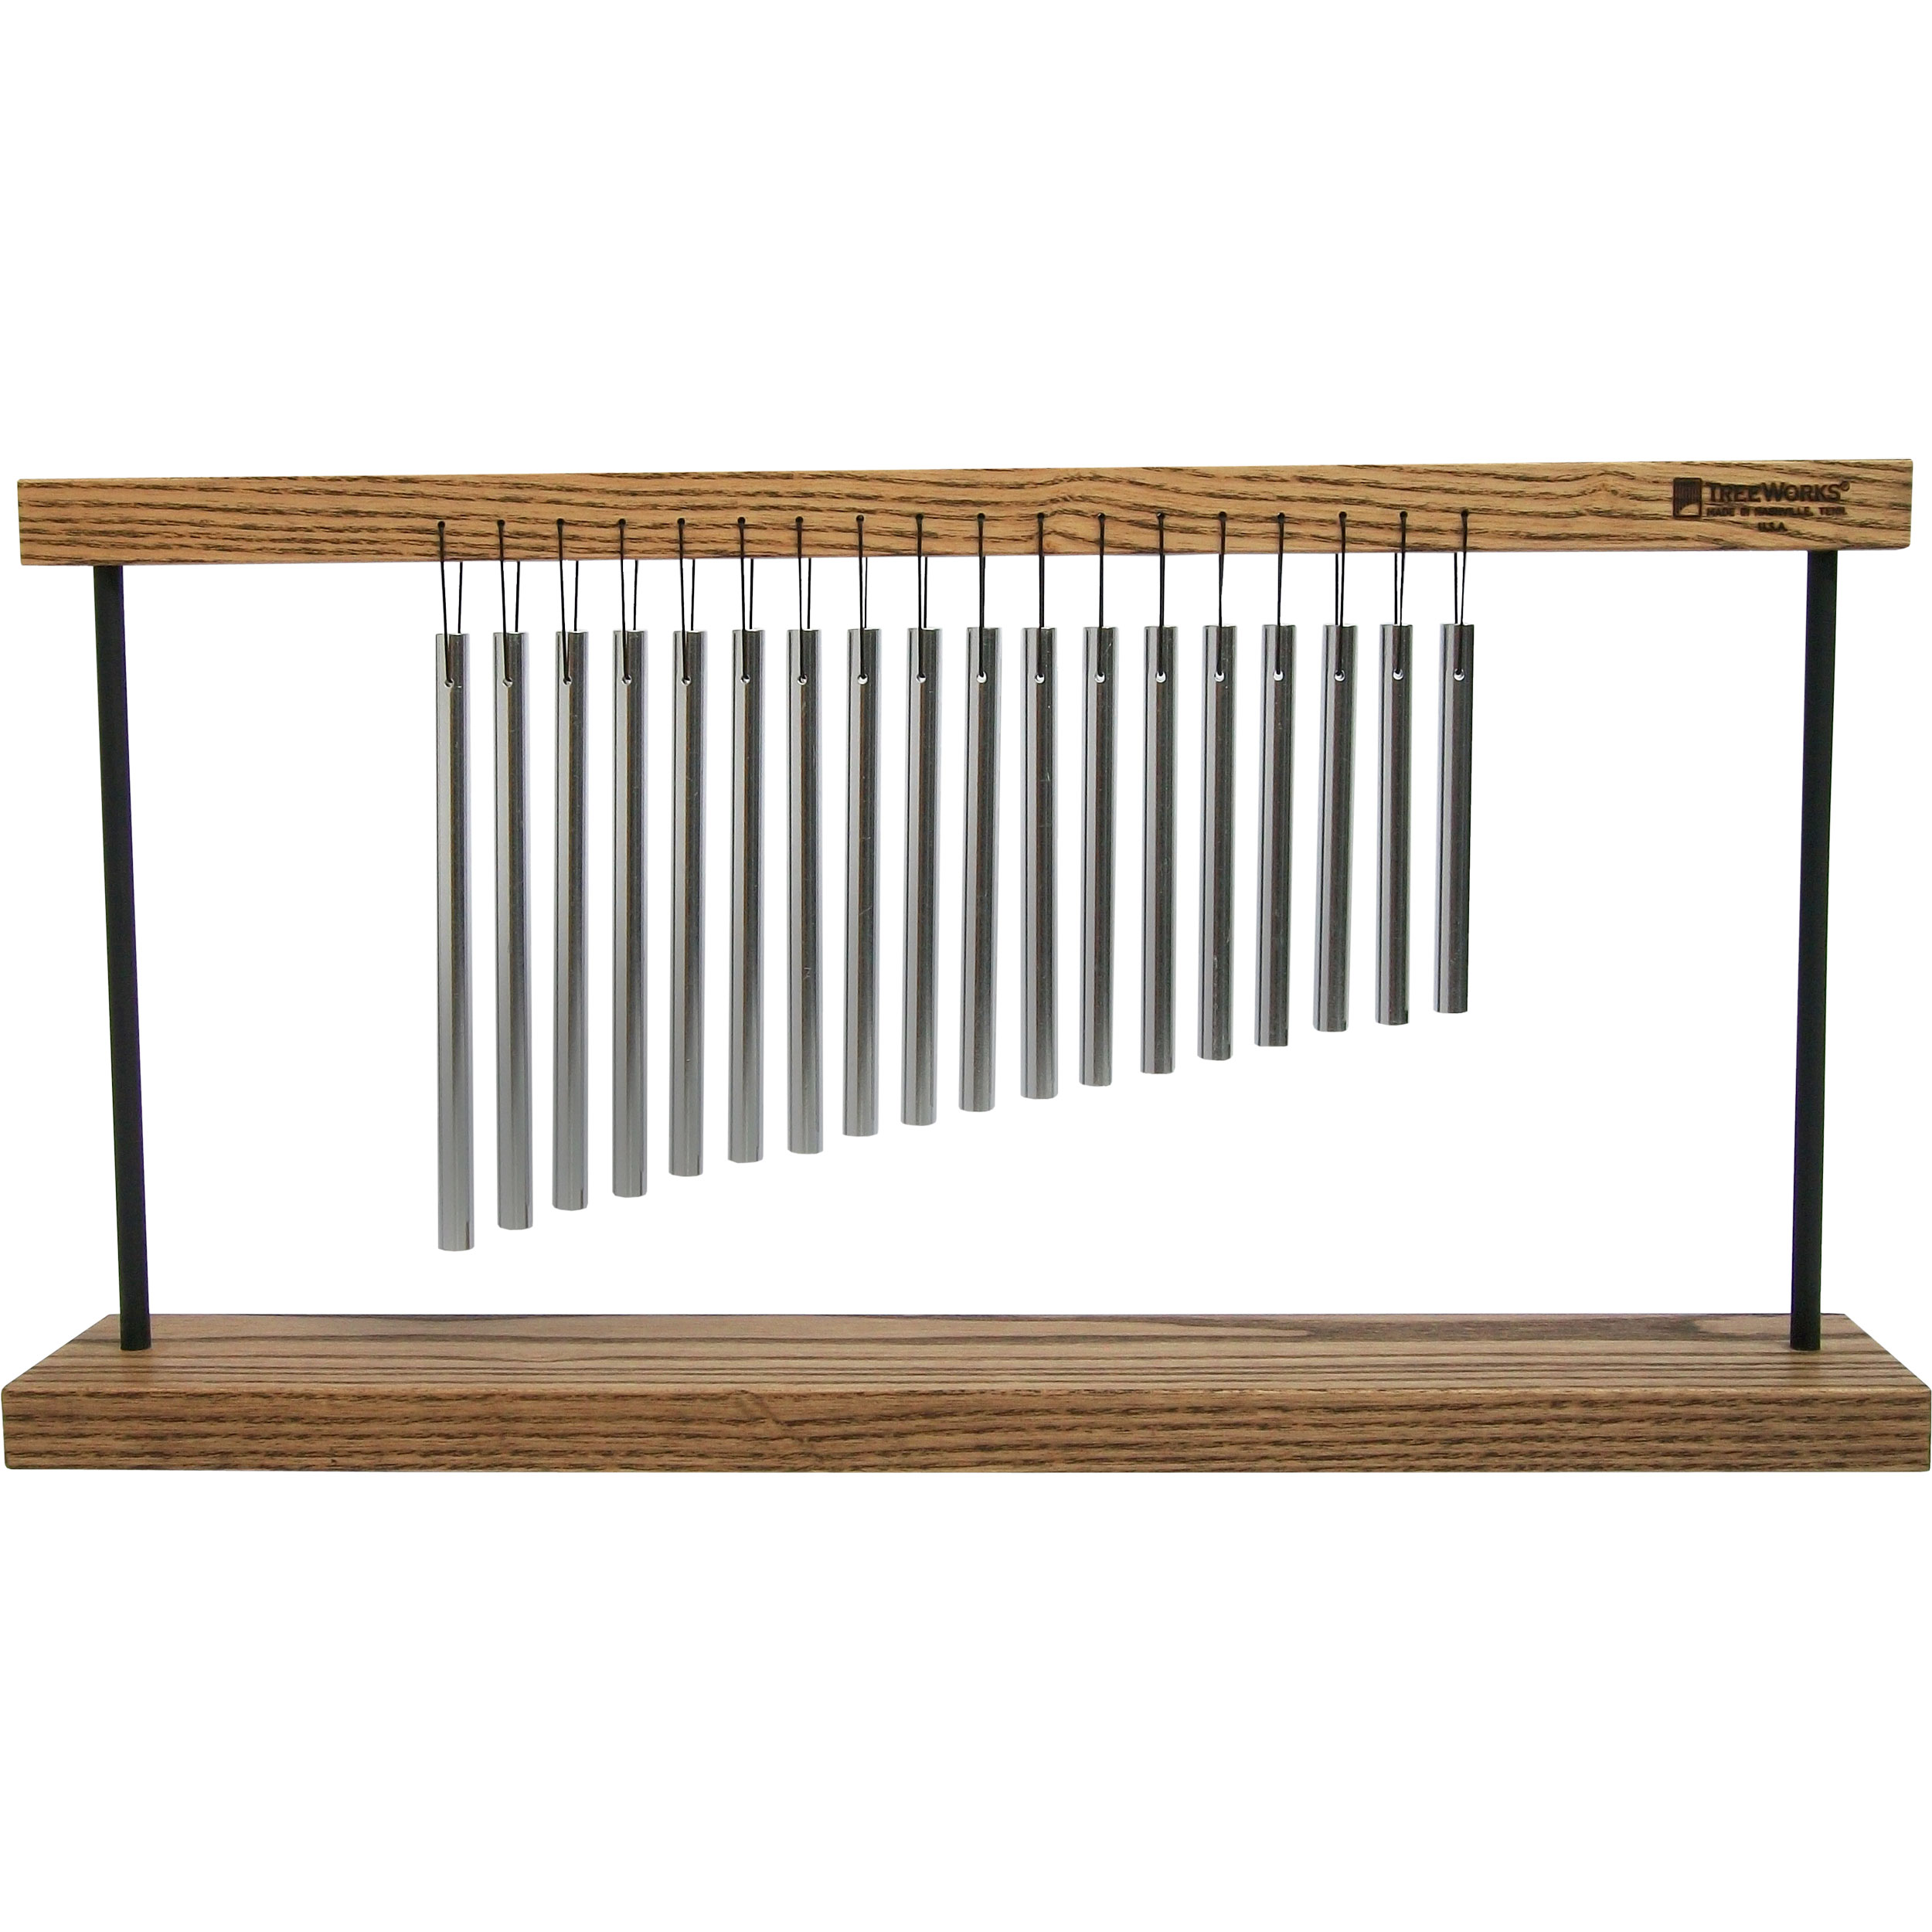 TreeWorks Table Top Chimes on Wooden Stand